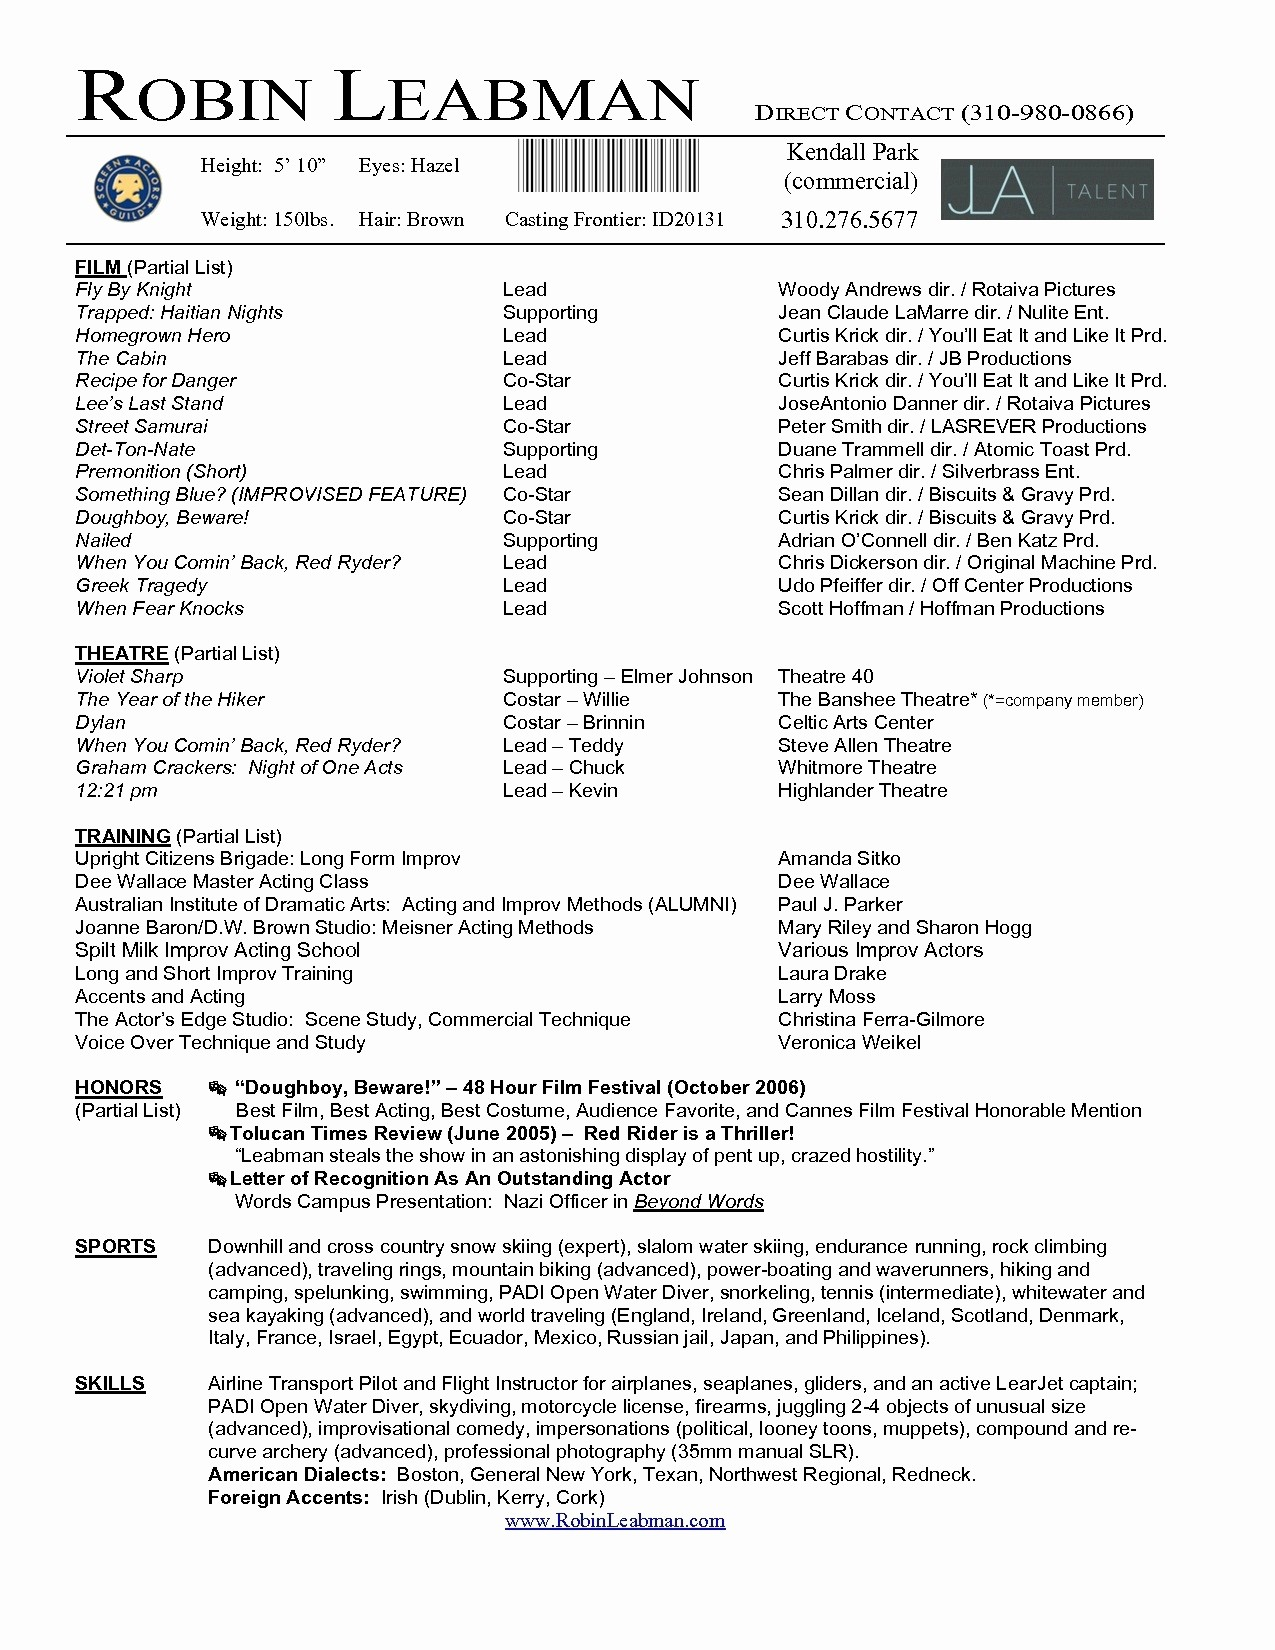 Professional Resume Templates Microsoft Word Lovely Acting Resume Template 2017